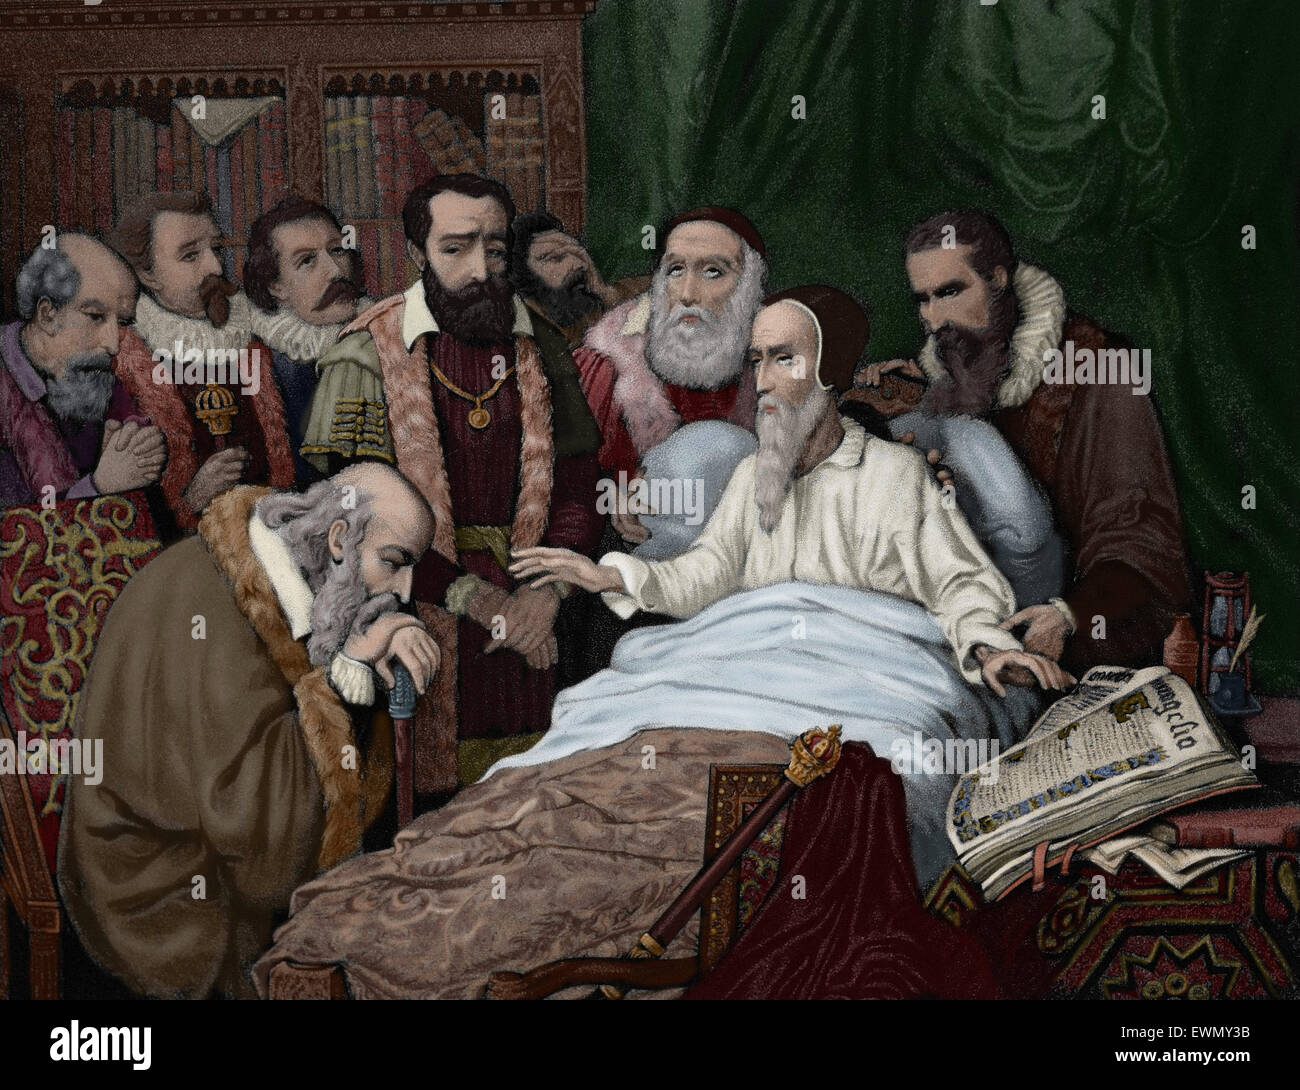 John Calvin (1509-1564). French theologian and reformer. Last moments of Calvin. Engraving, 1882. Colored. - Stock Image